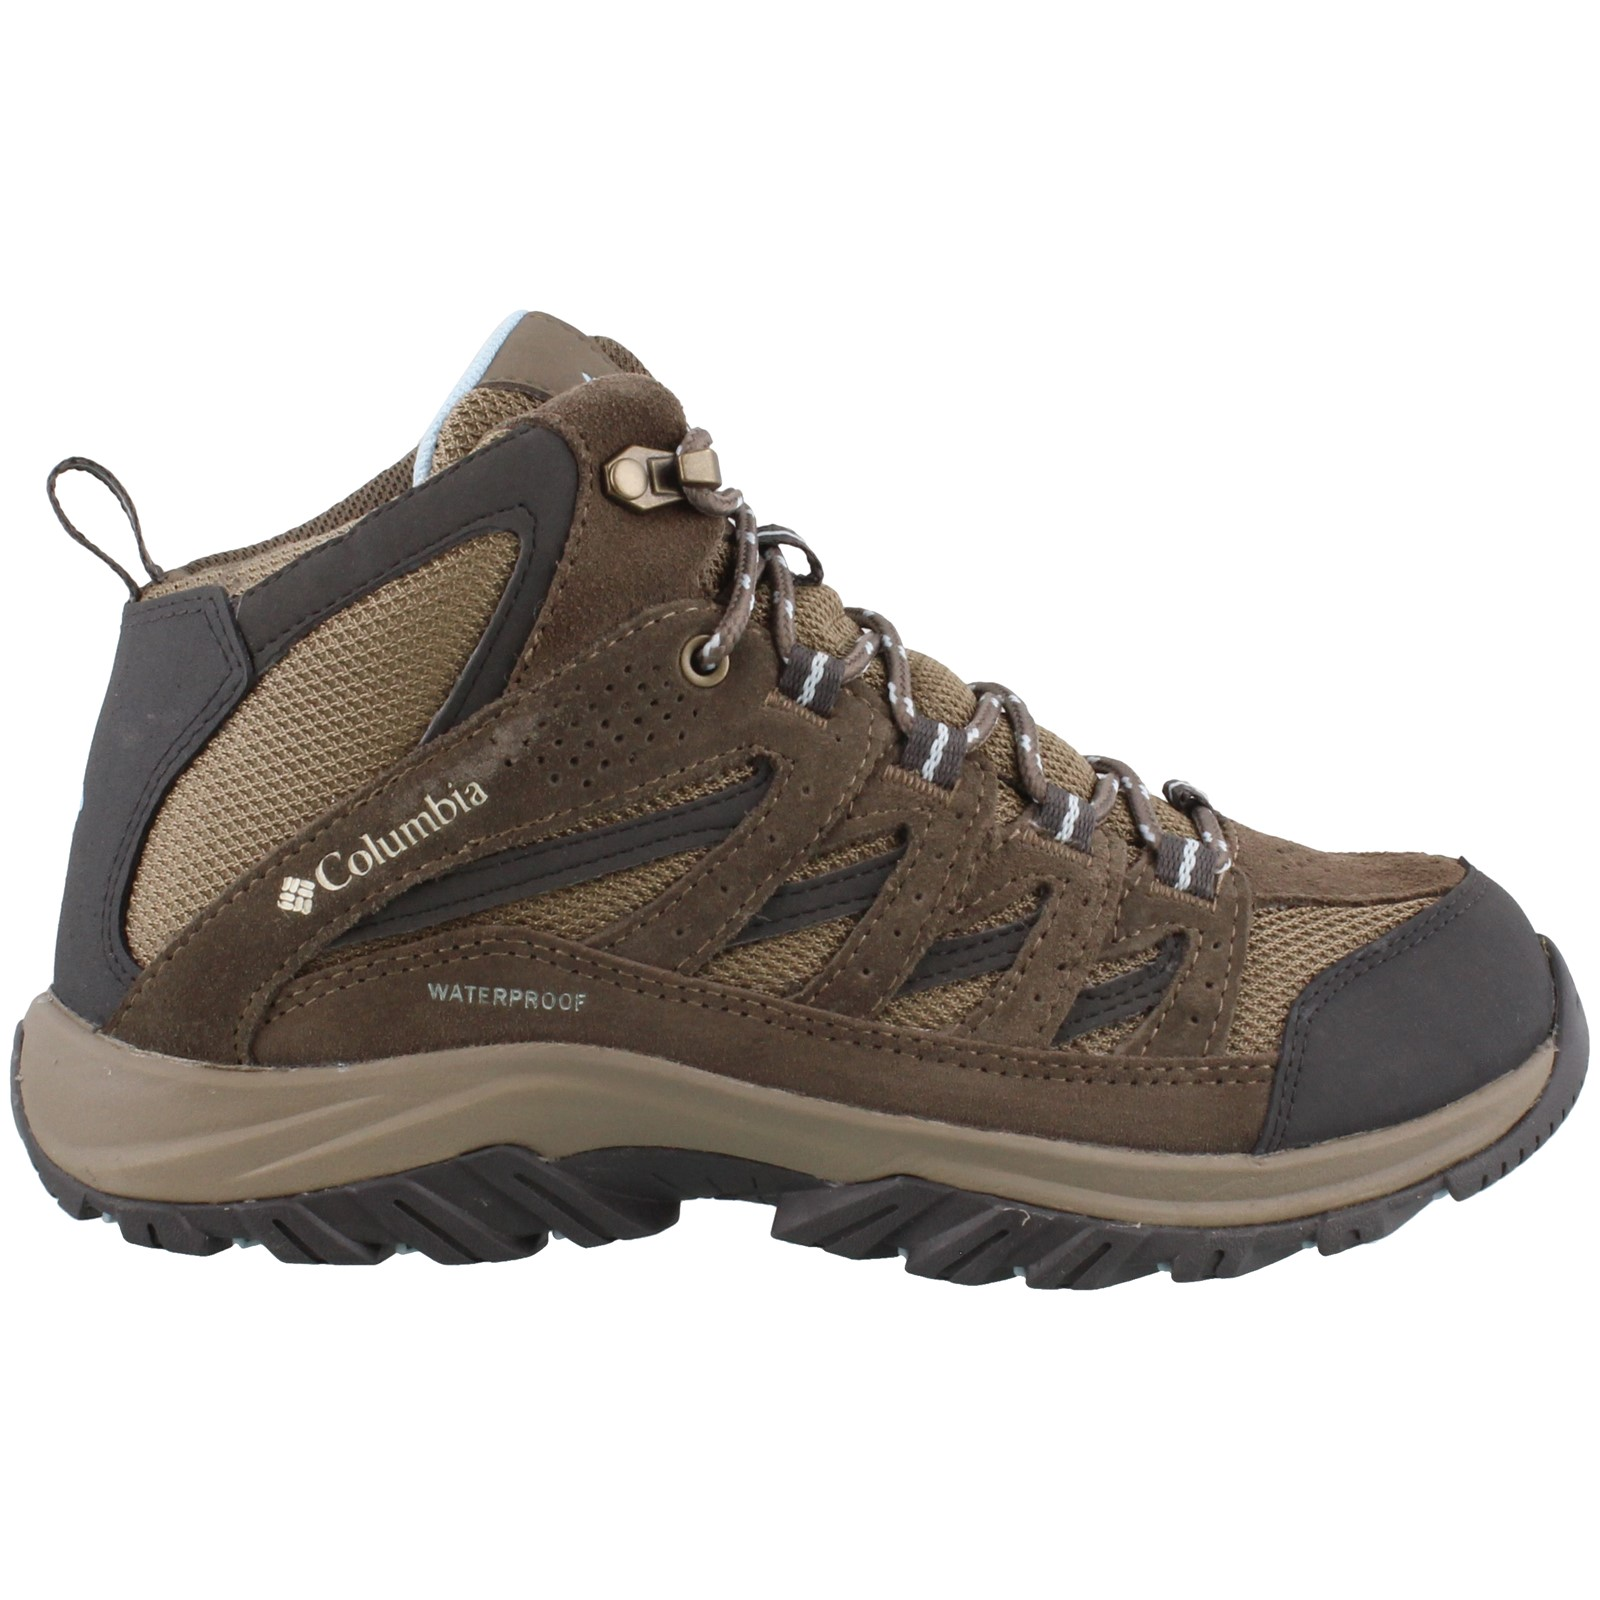 1710f678ceb Women's COLUMBIA, CRESTWOOD MID WATERPROOF SHOES